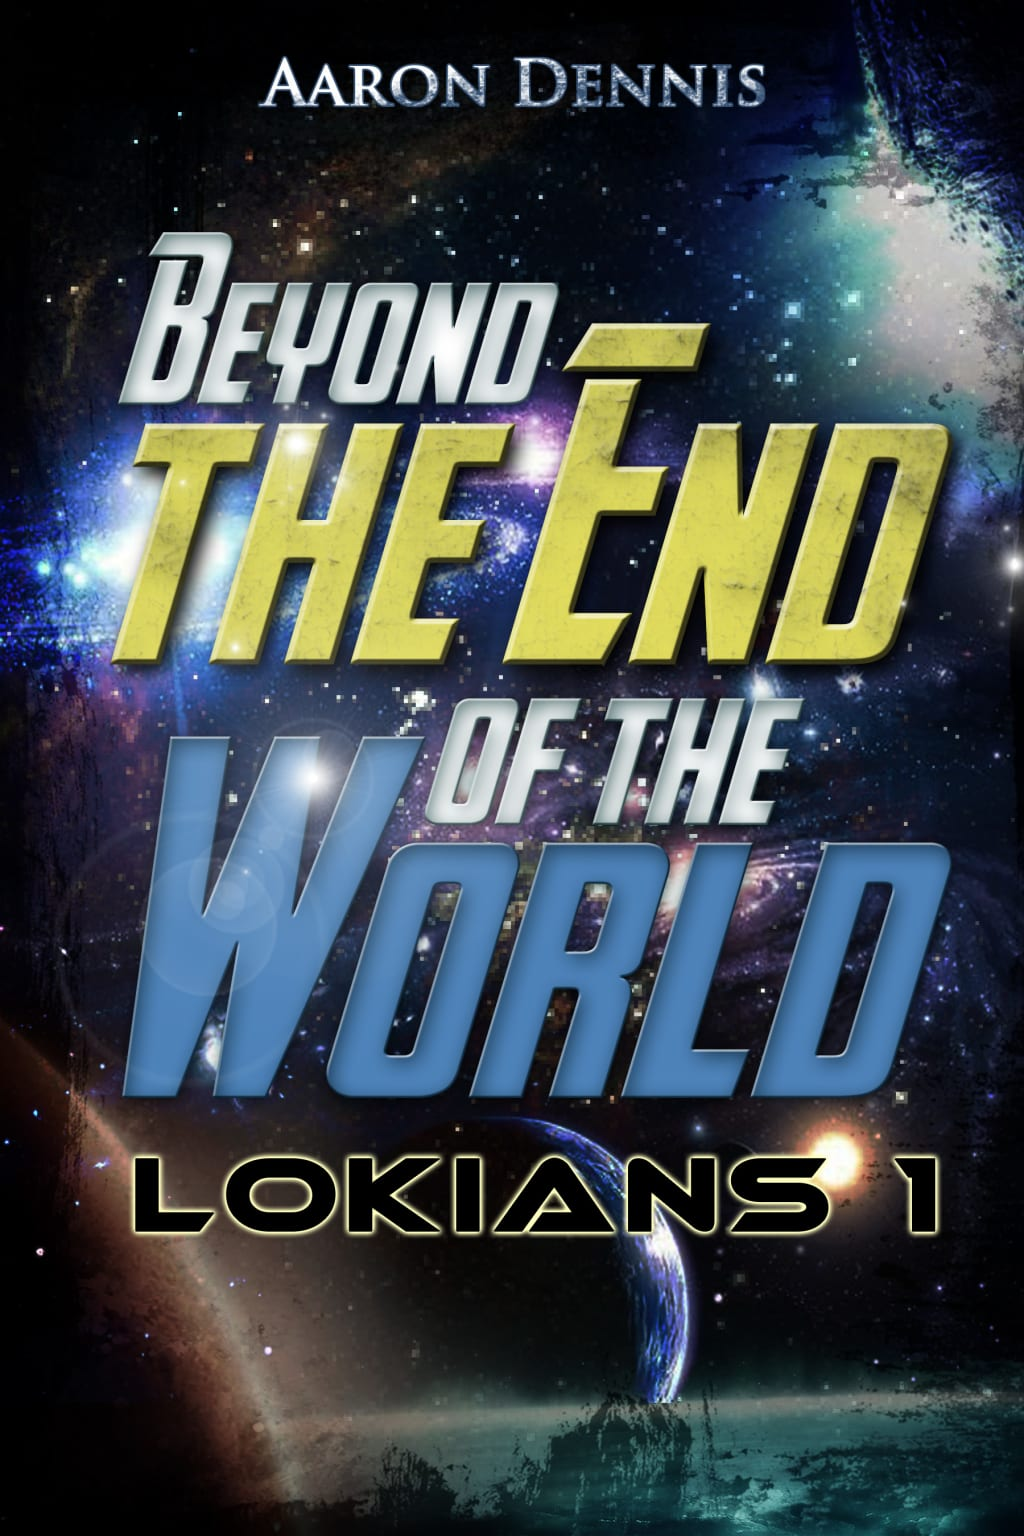 Part 26 of Beyond the End of the World, Lokians 1